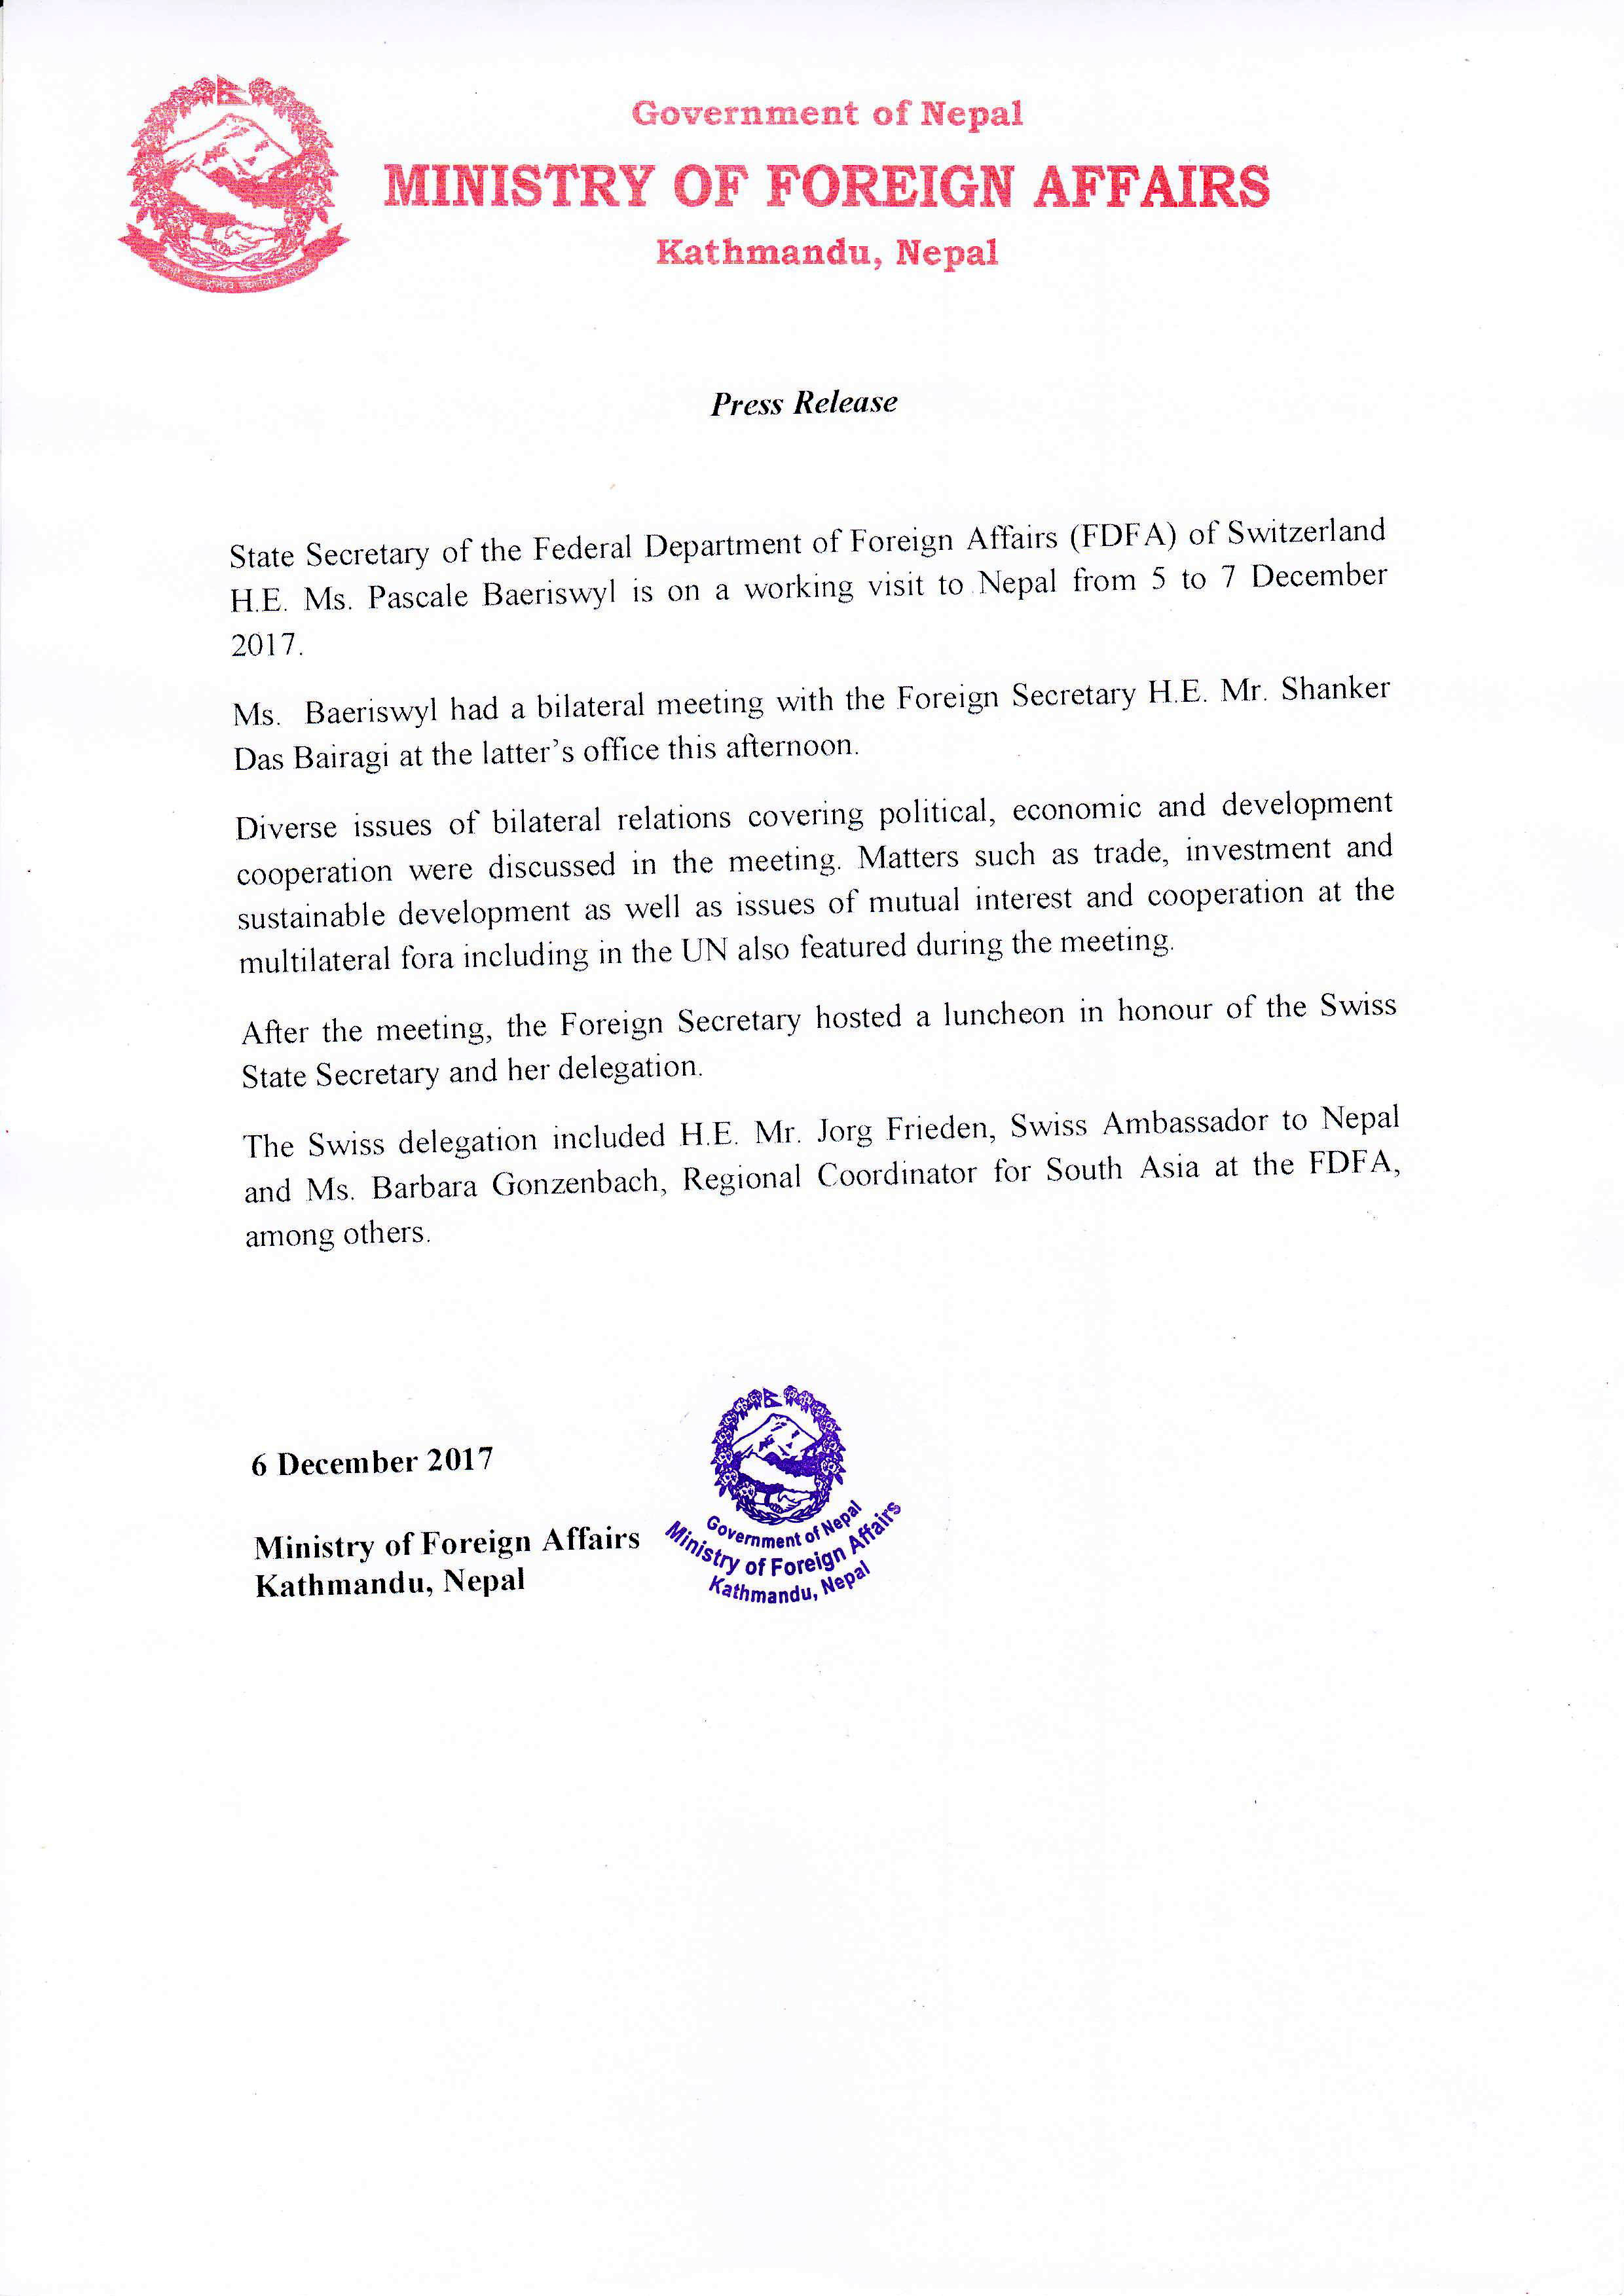 Press release on visit of State Secretary of the Federal